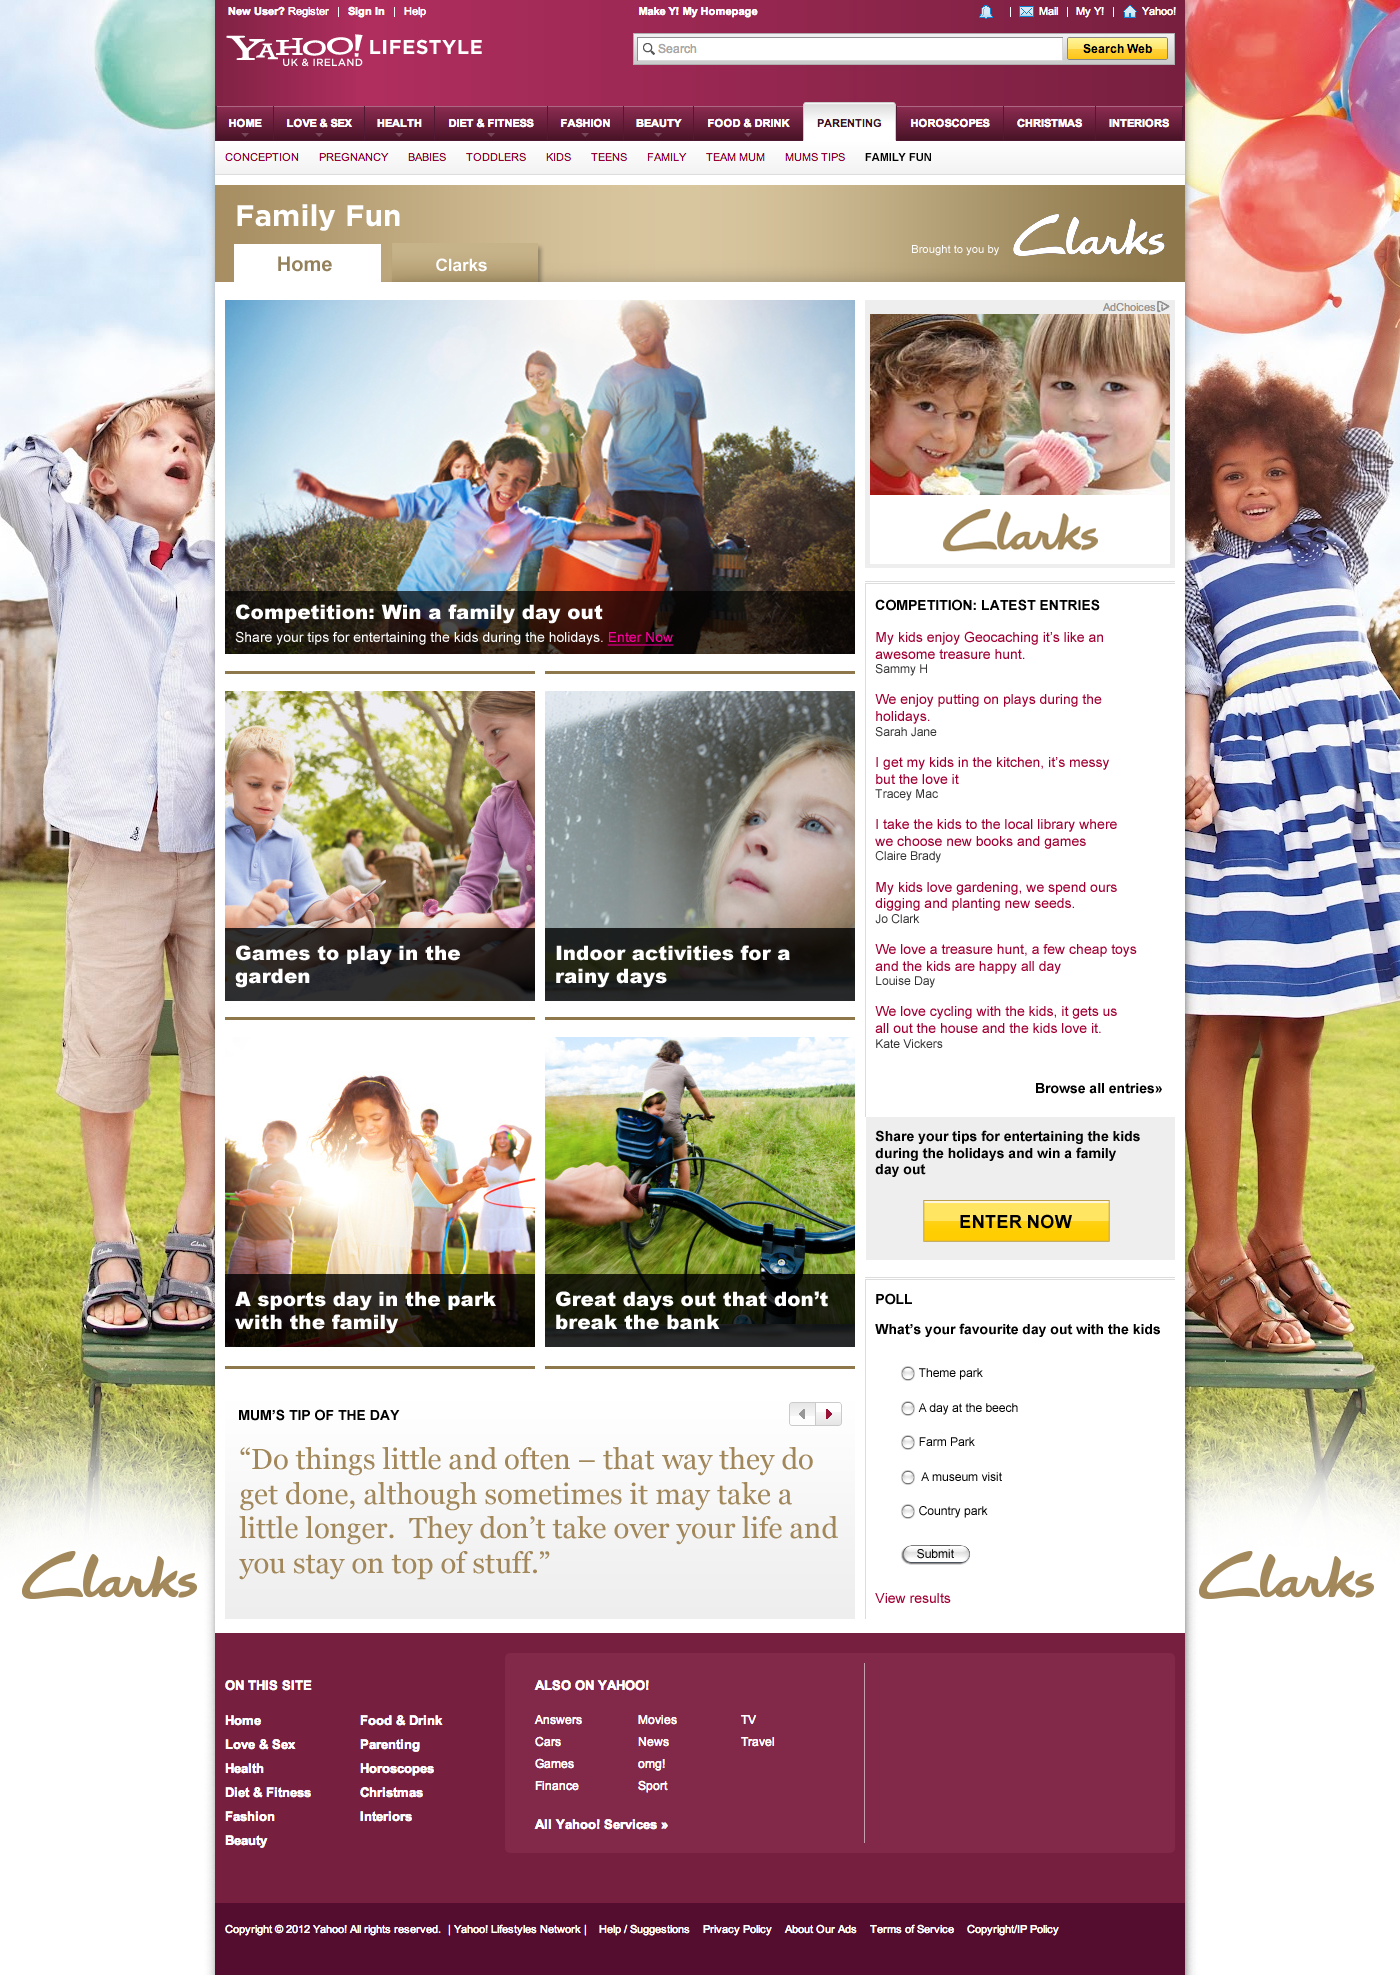 Clarks Family Fun - Website design Farnborough, Hampshire